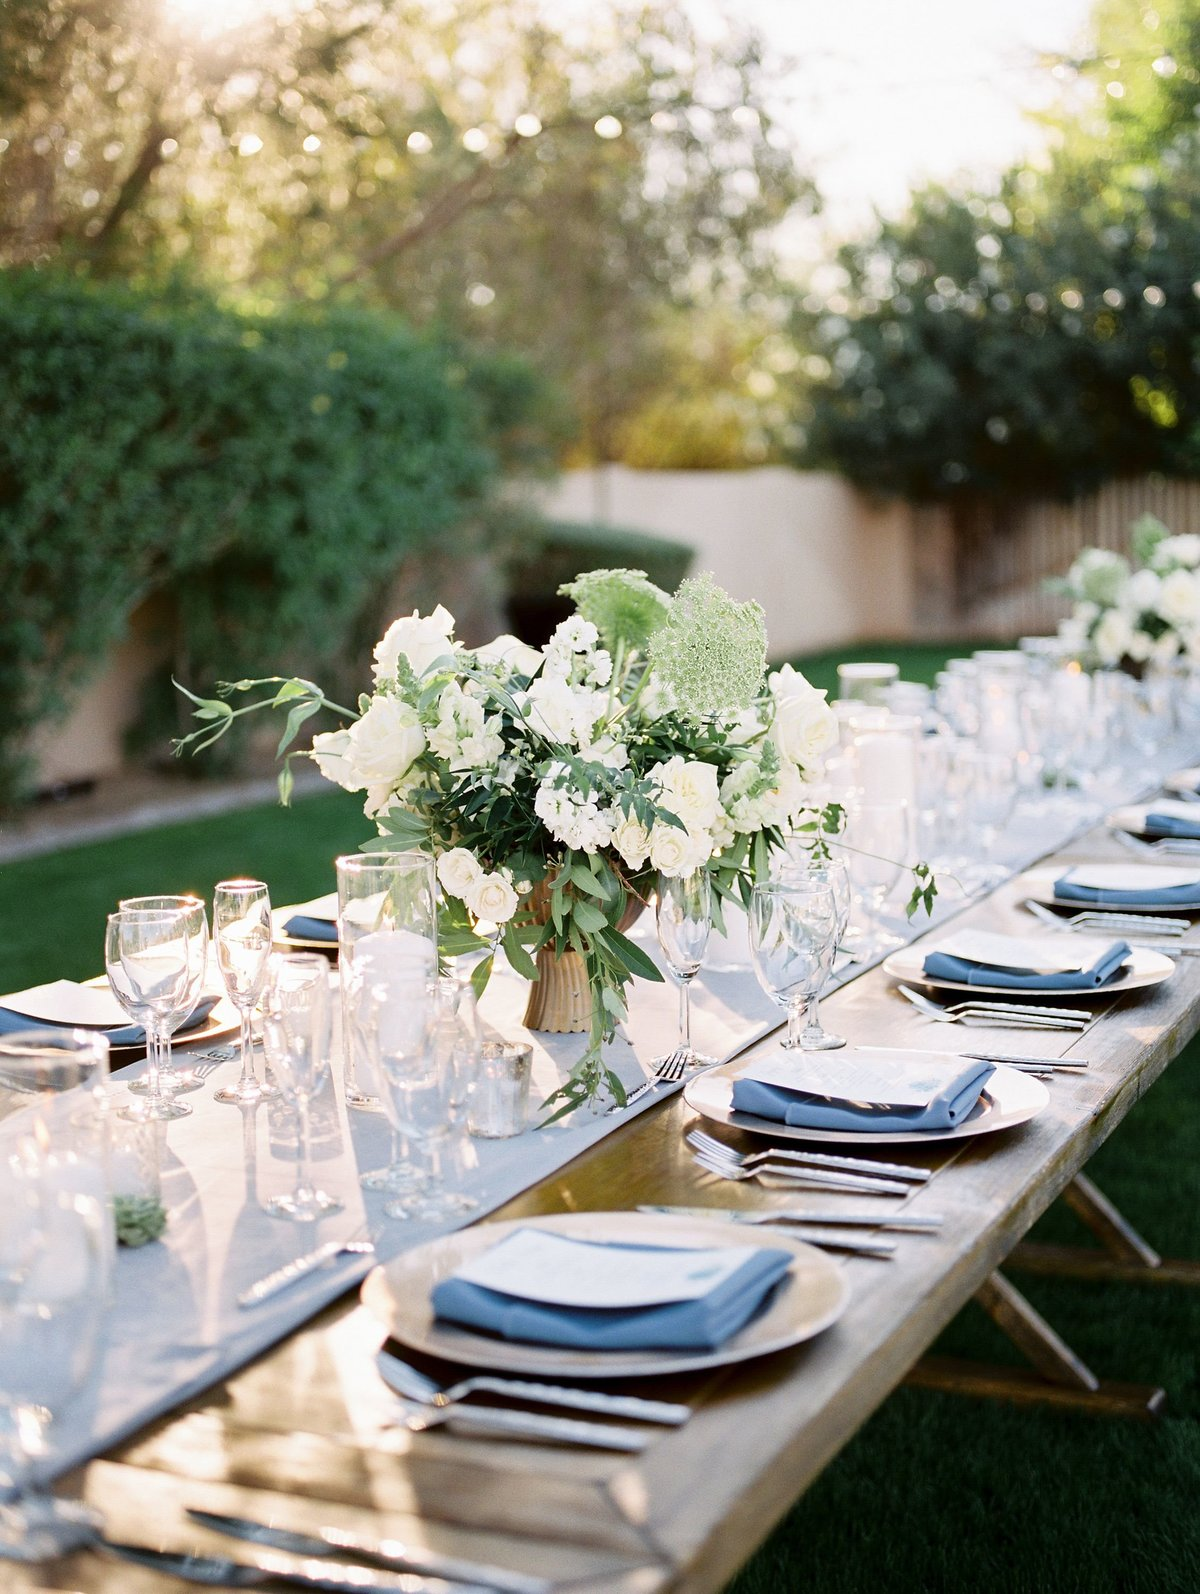 Imoni-Events-Charity-Maurer-Scottsdale-Private-Residence_0026